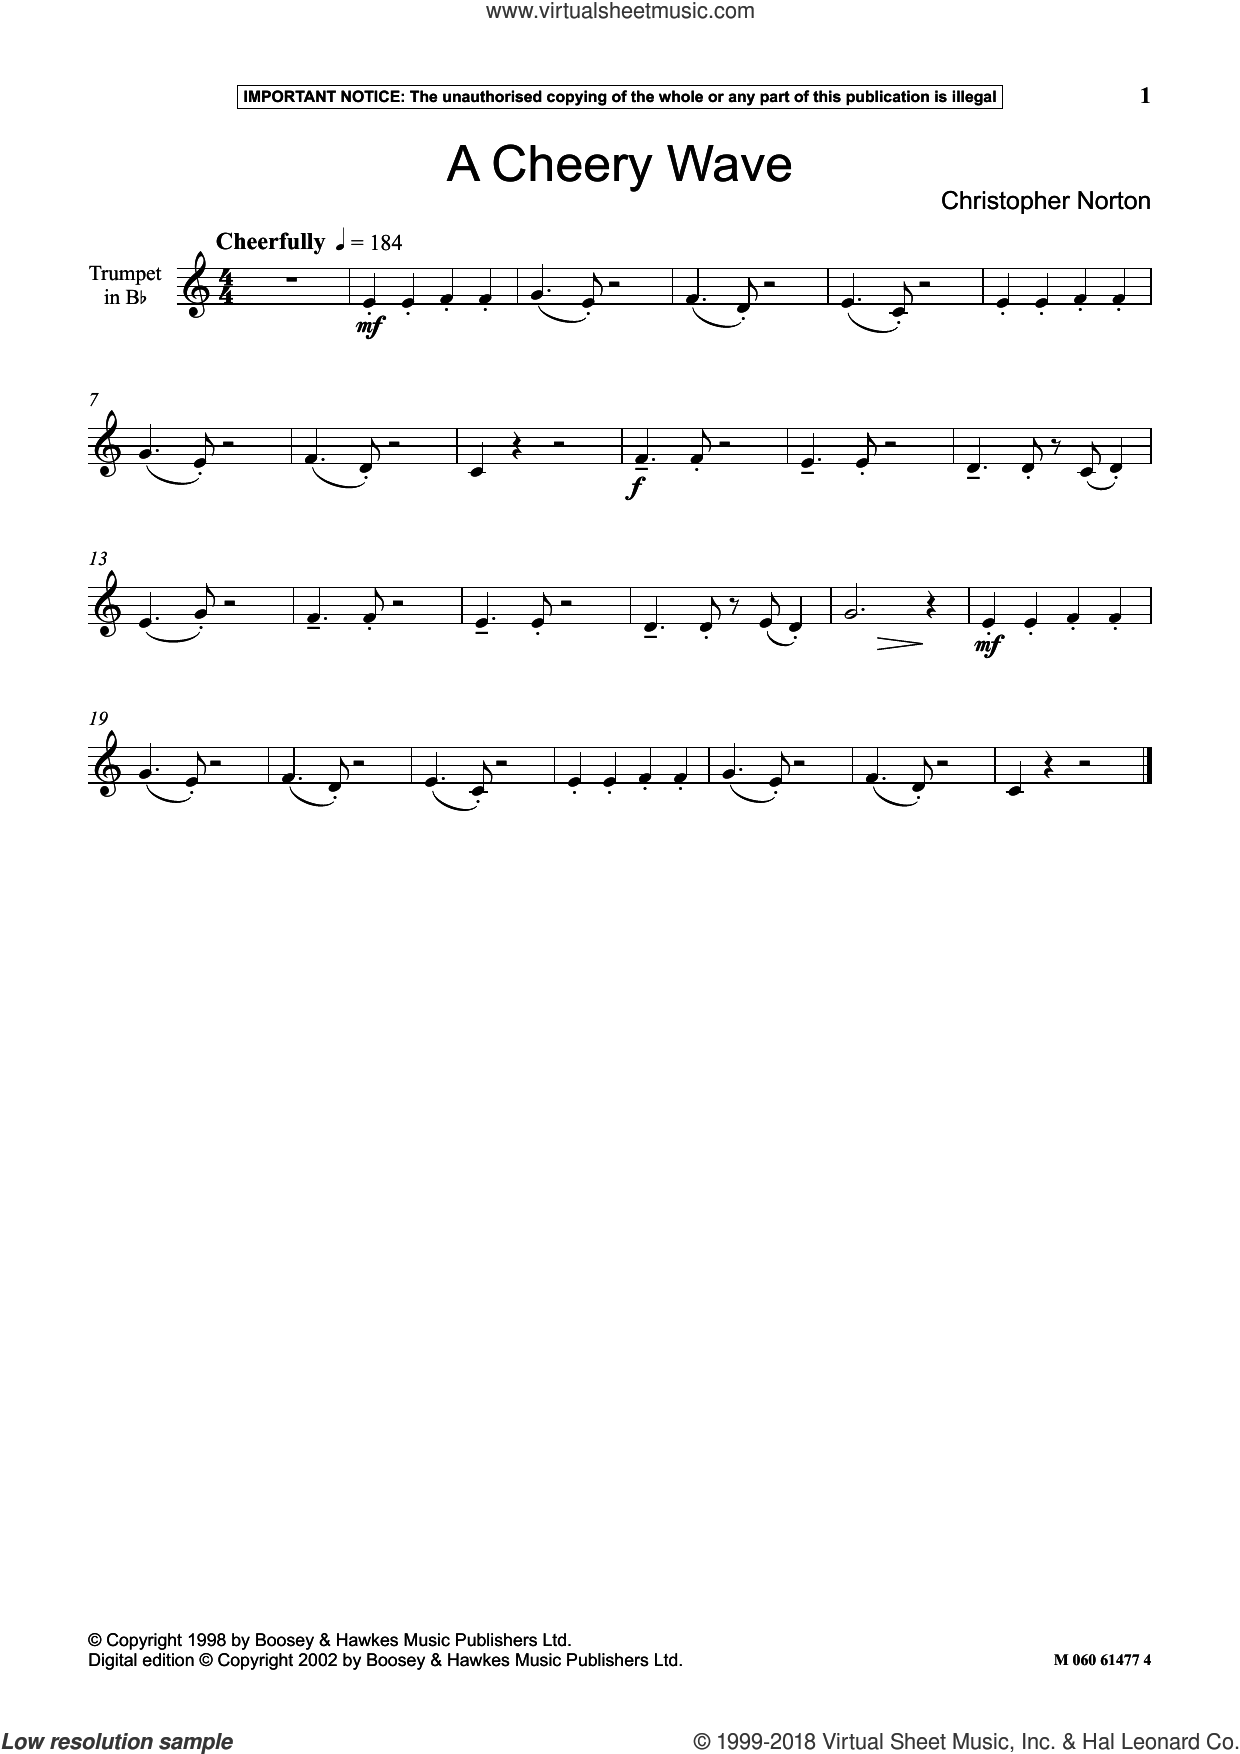 A Cheery Wave sheet music for trumpet solo by Christopher Norton, classical score, intermediate skill level